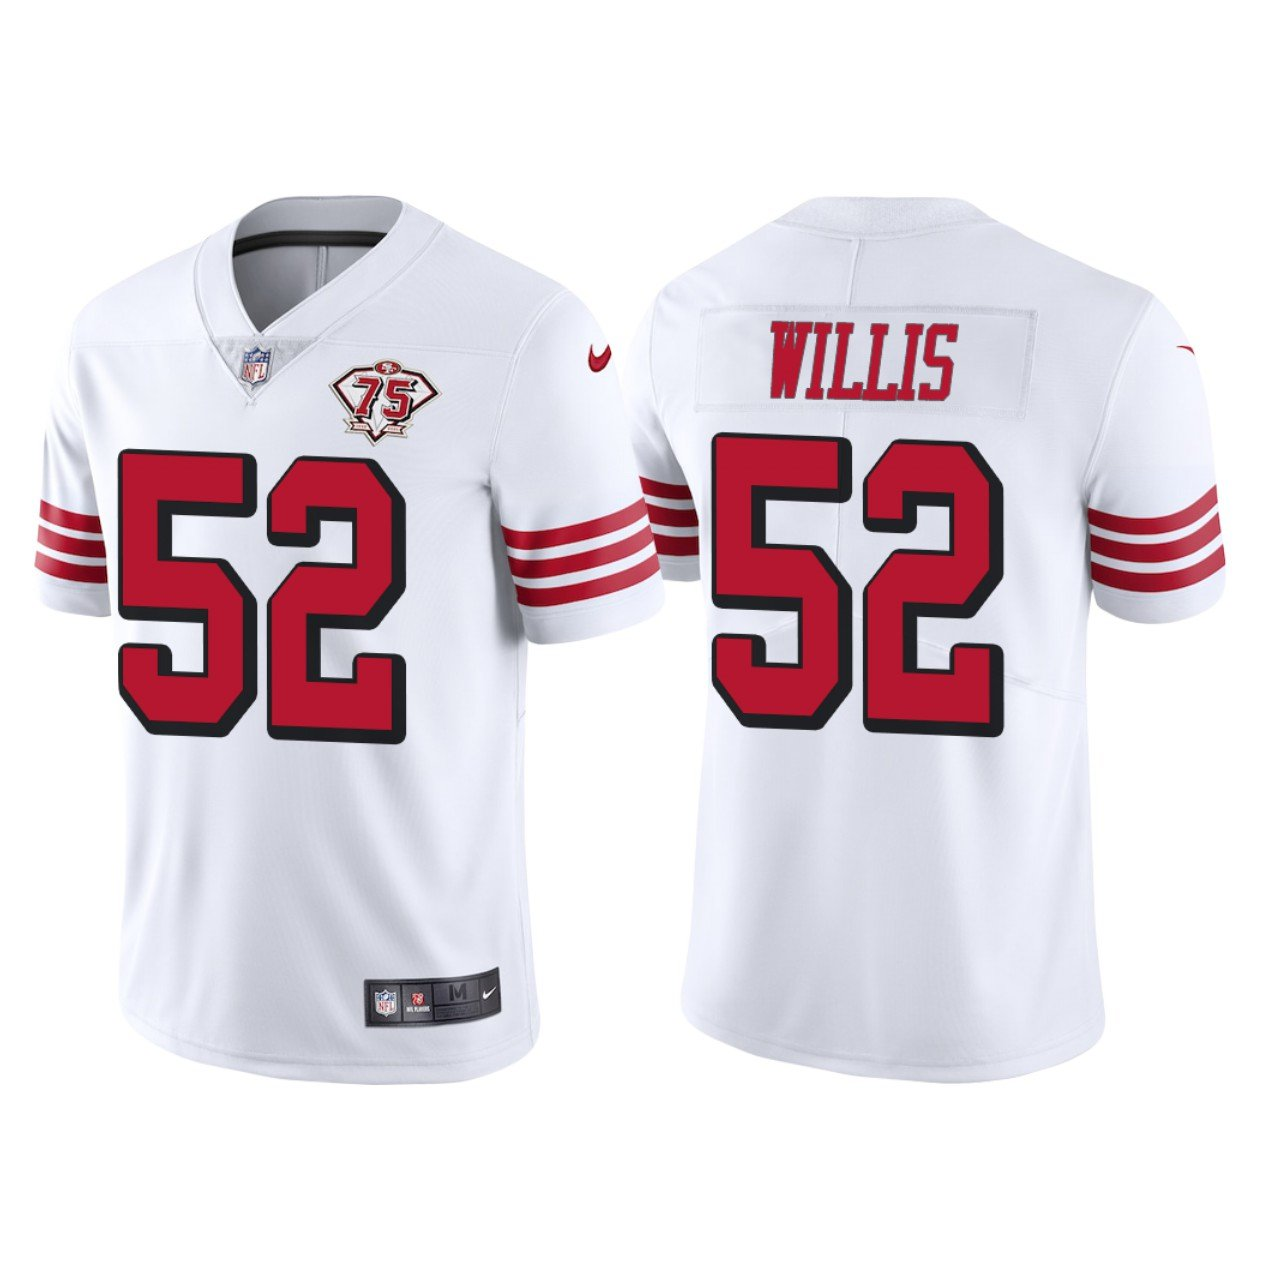 Men's #52 Patrick Willis San Francisco 49ers White Throwback Jersey 75th Anniversary Stitched